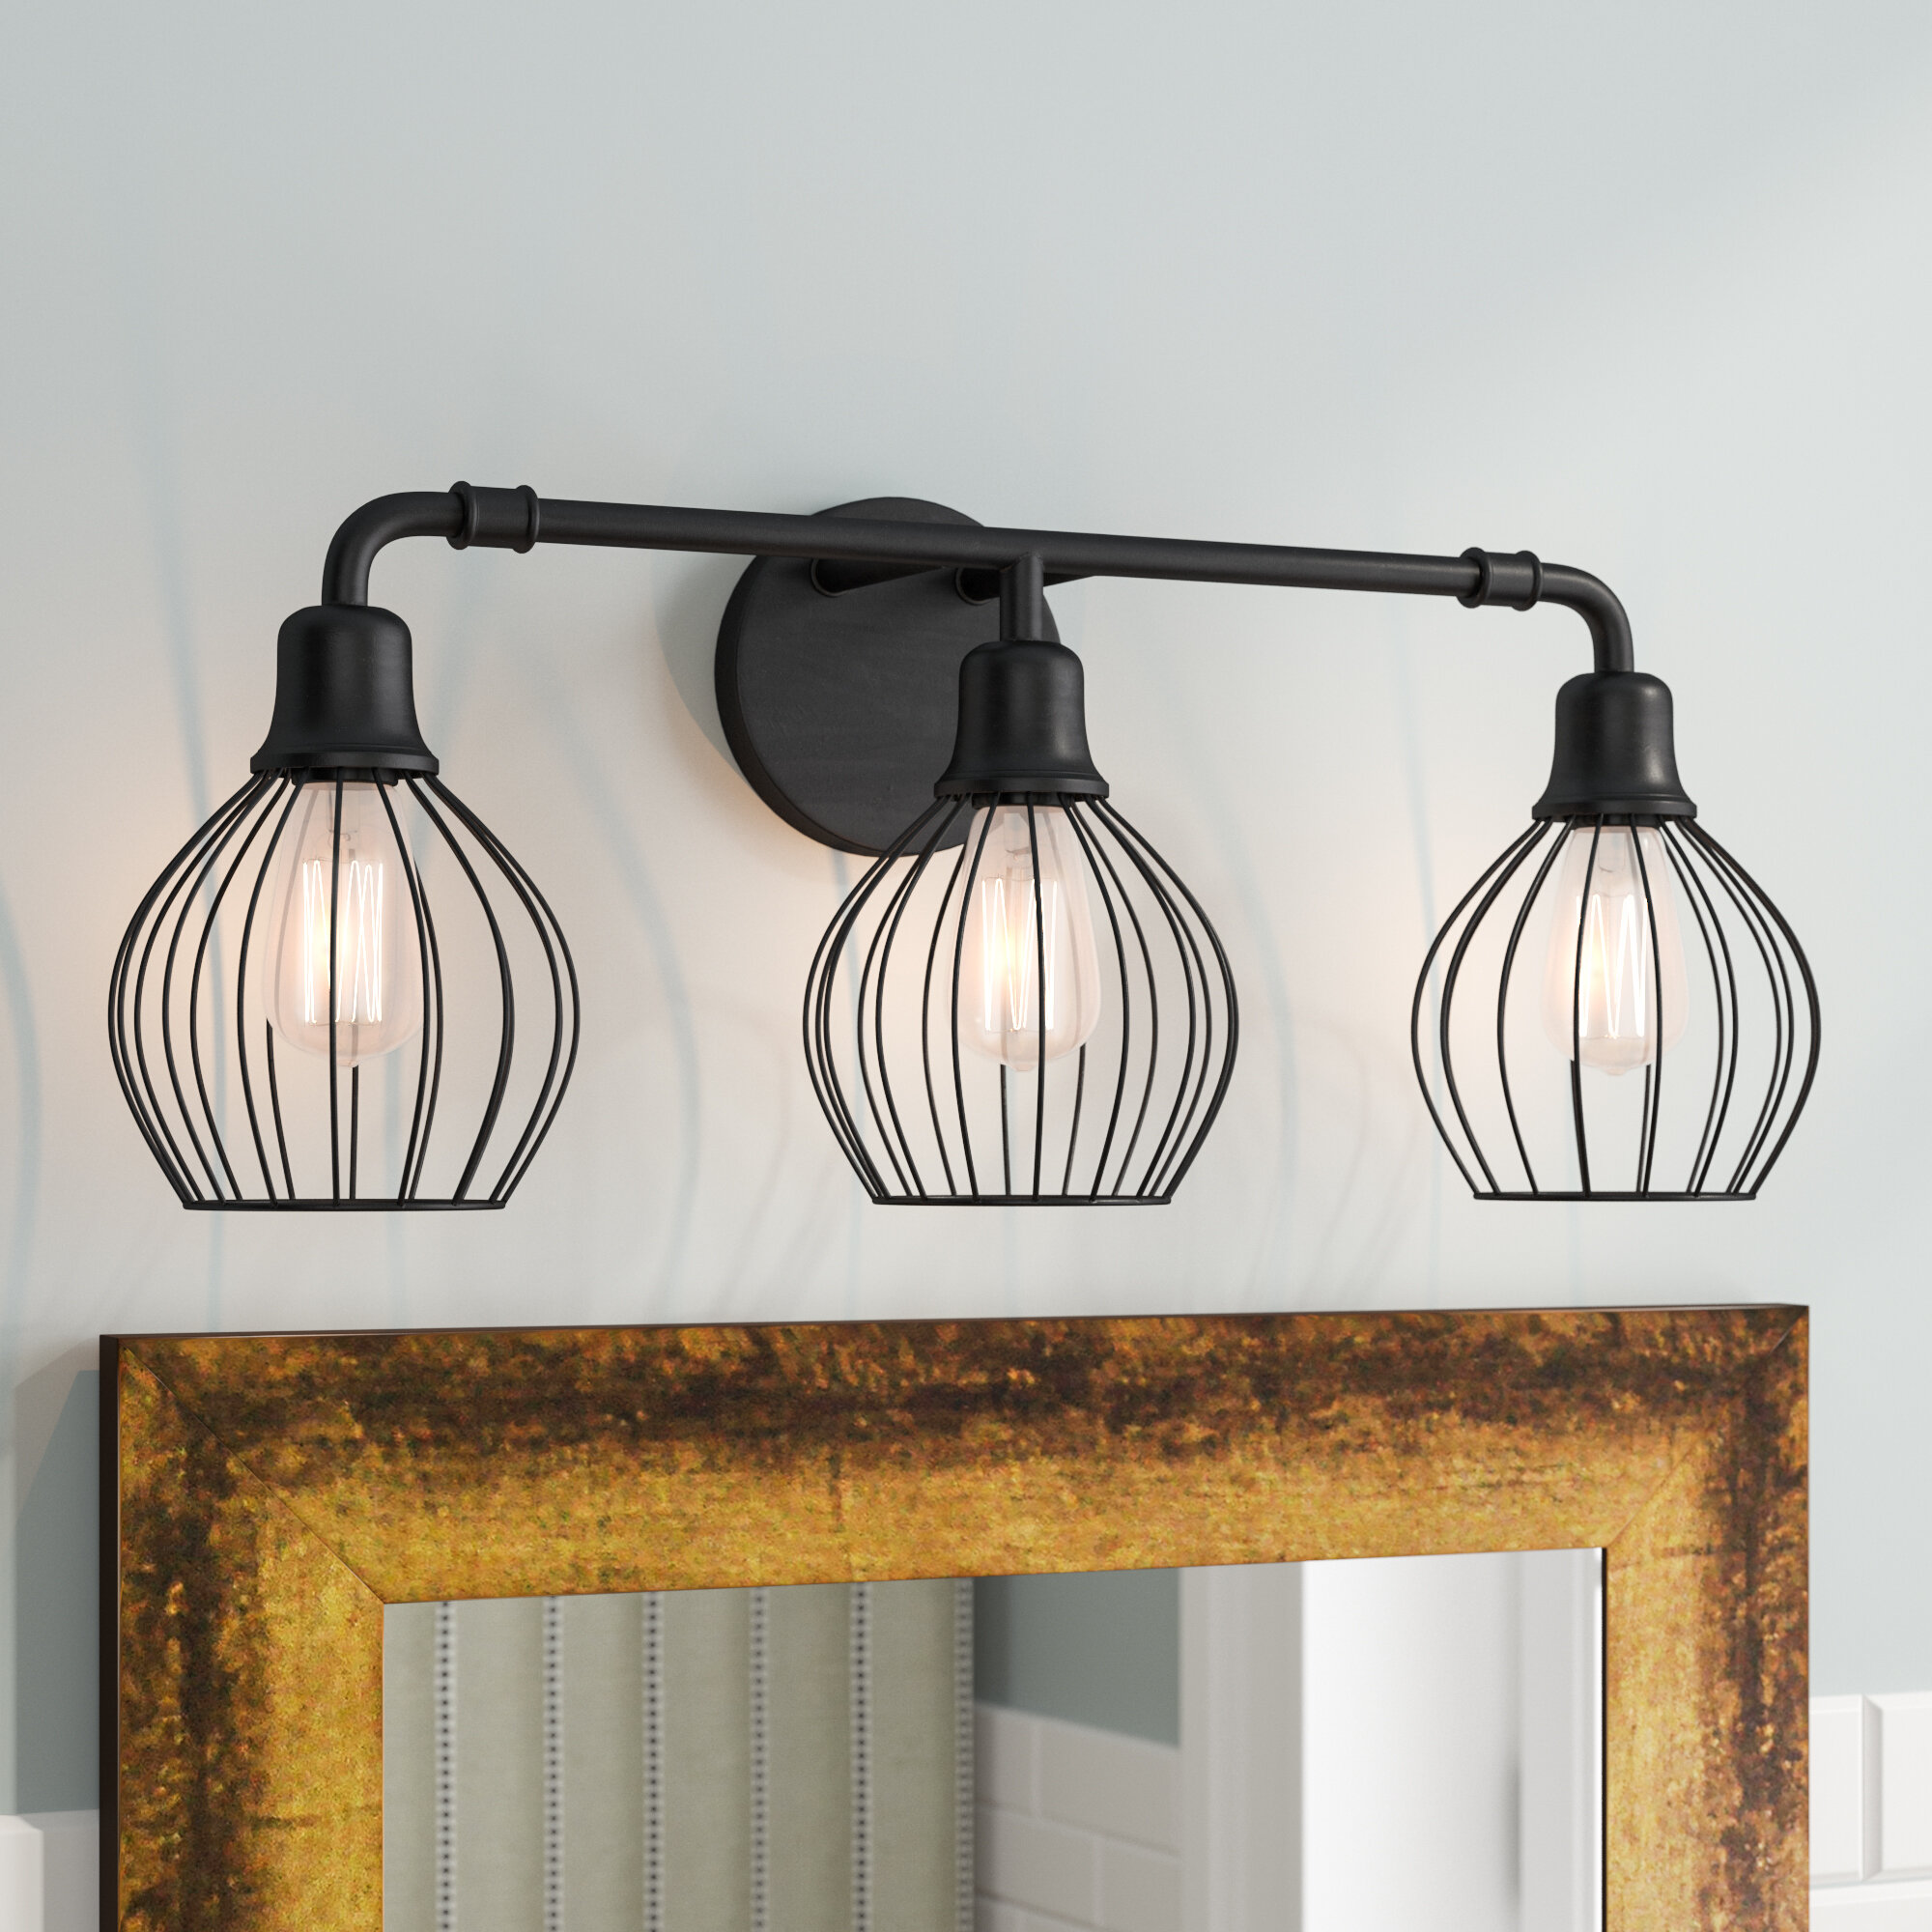 Birch Lane Mahtomedi 3 Light Vanity Light Reviews Wayfair Ca